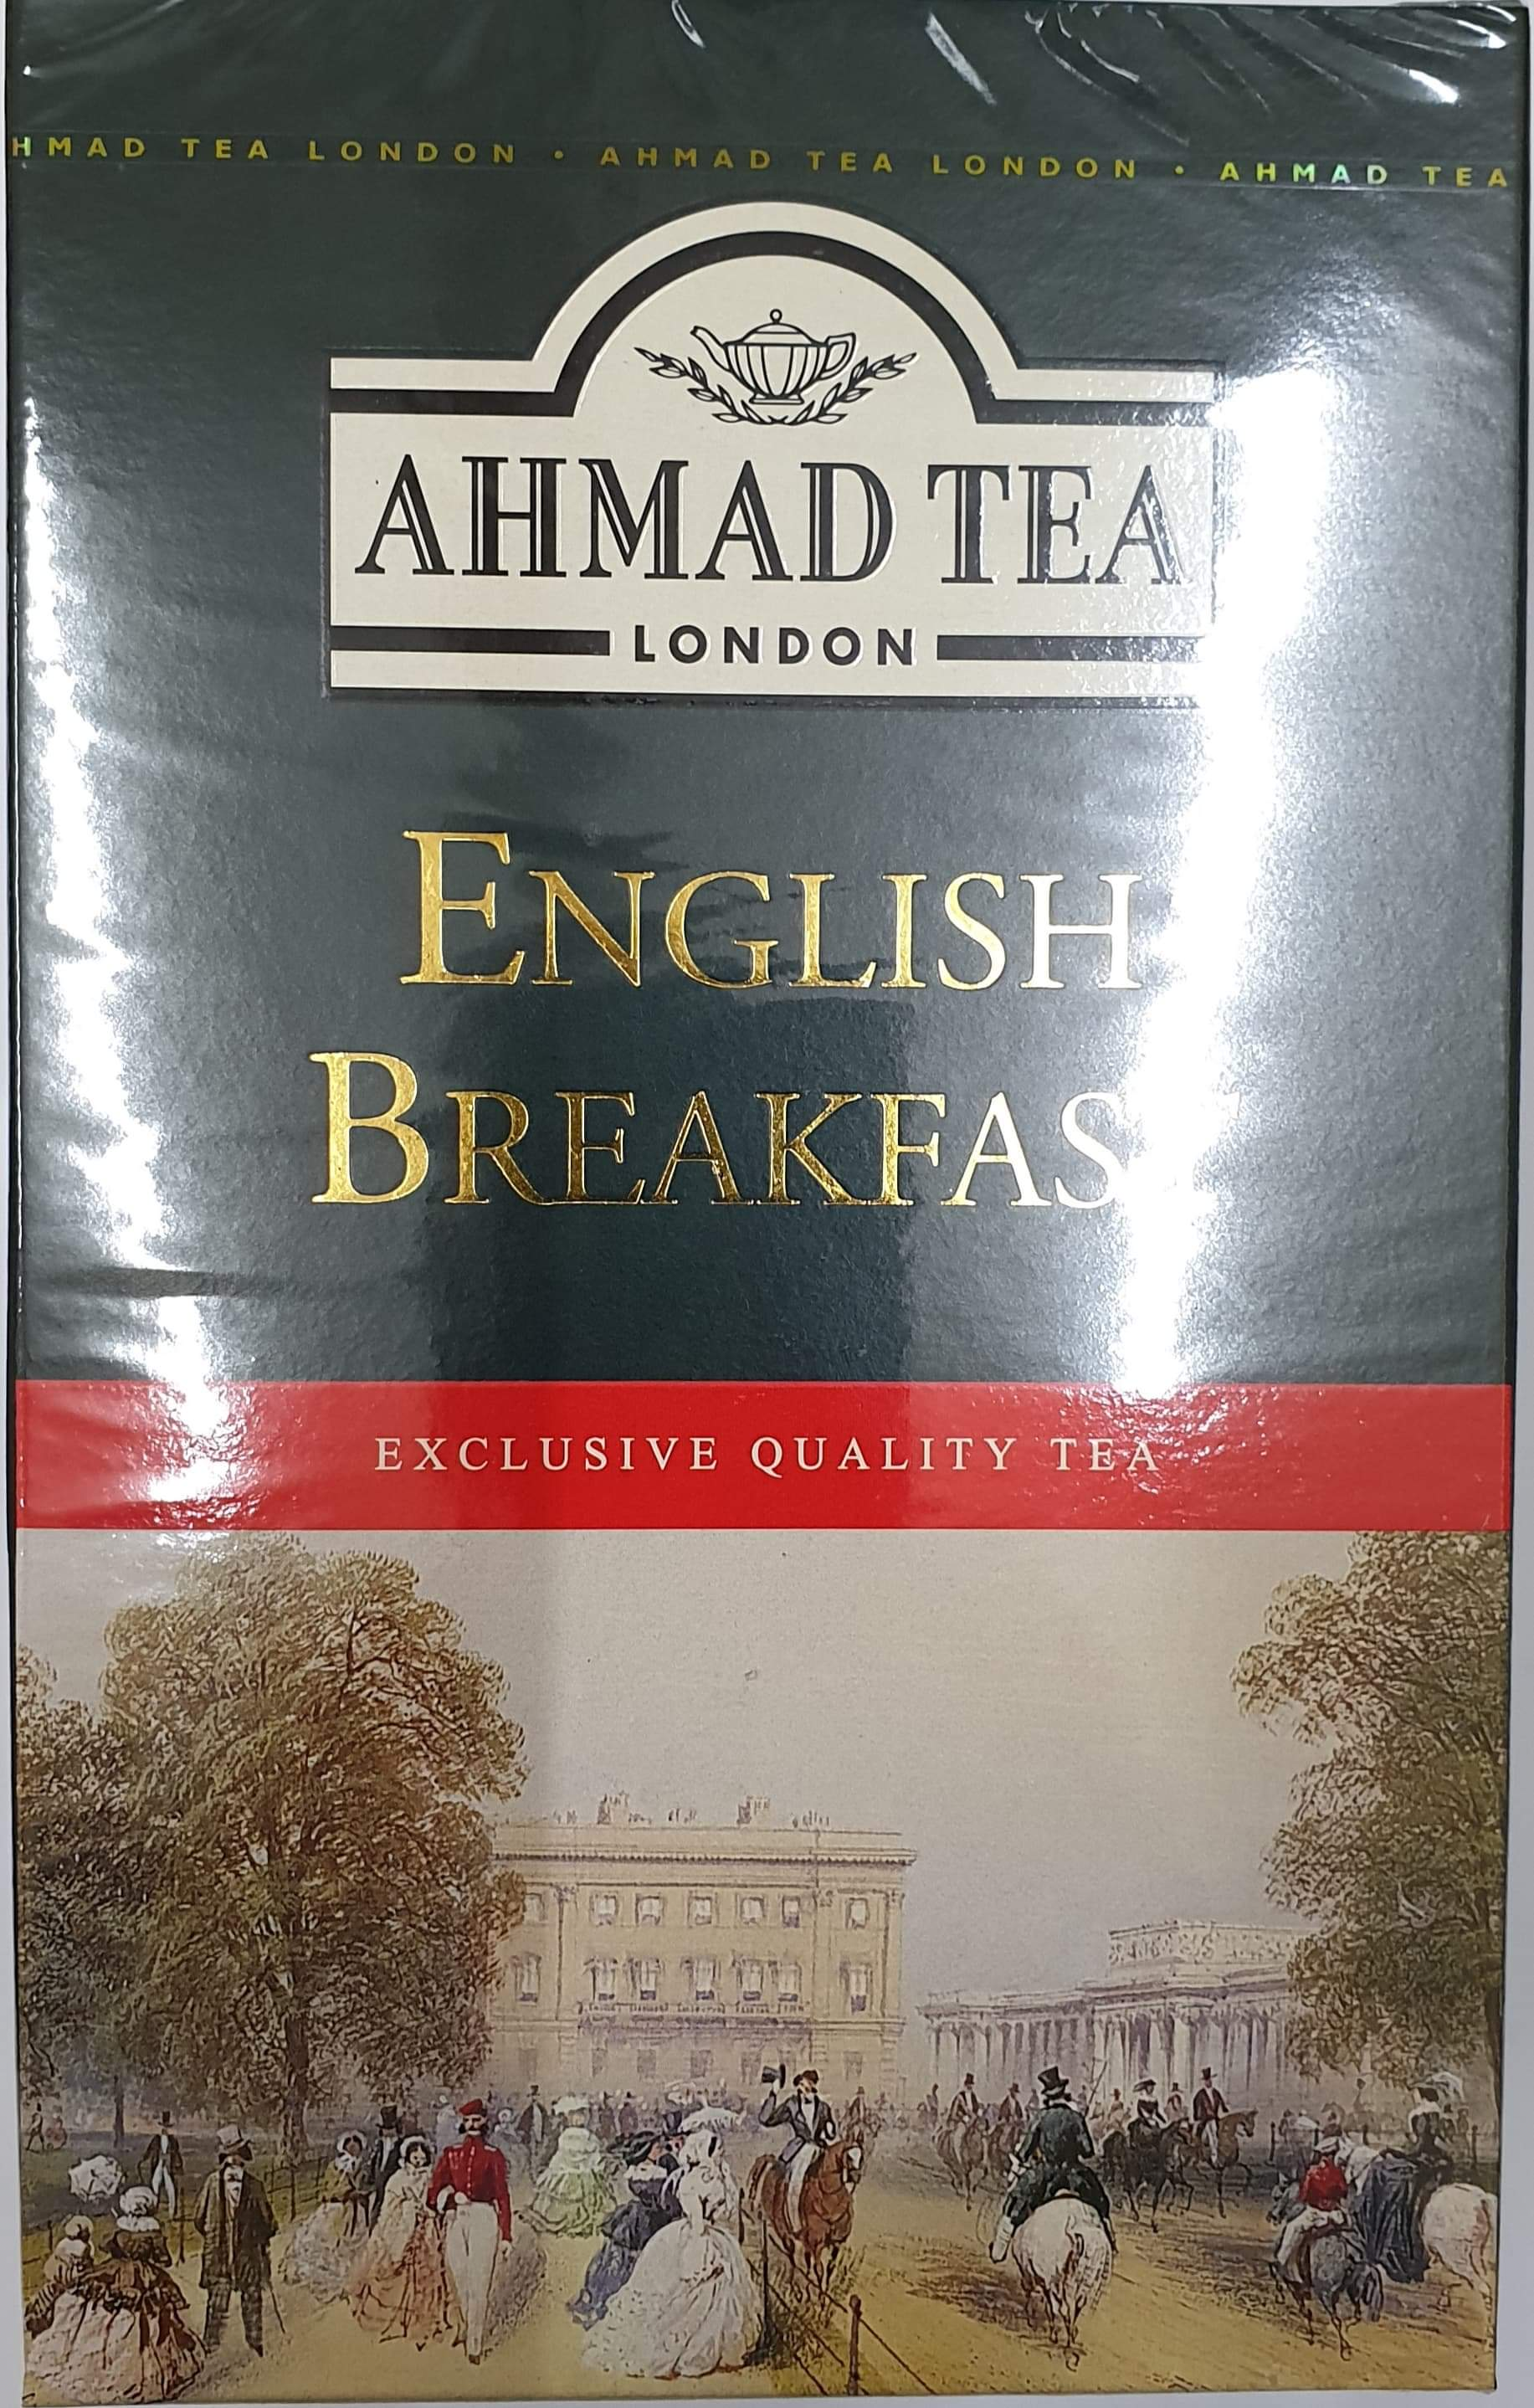 Ahmad tea english breakfast černý čaj 500g